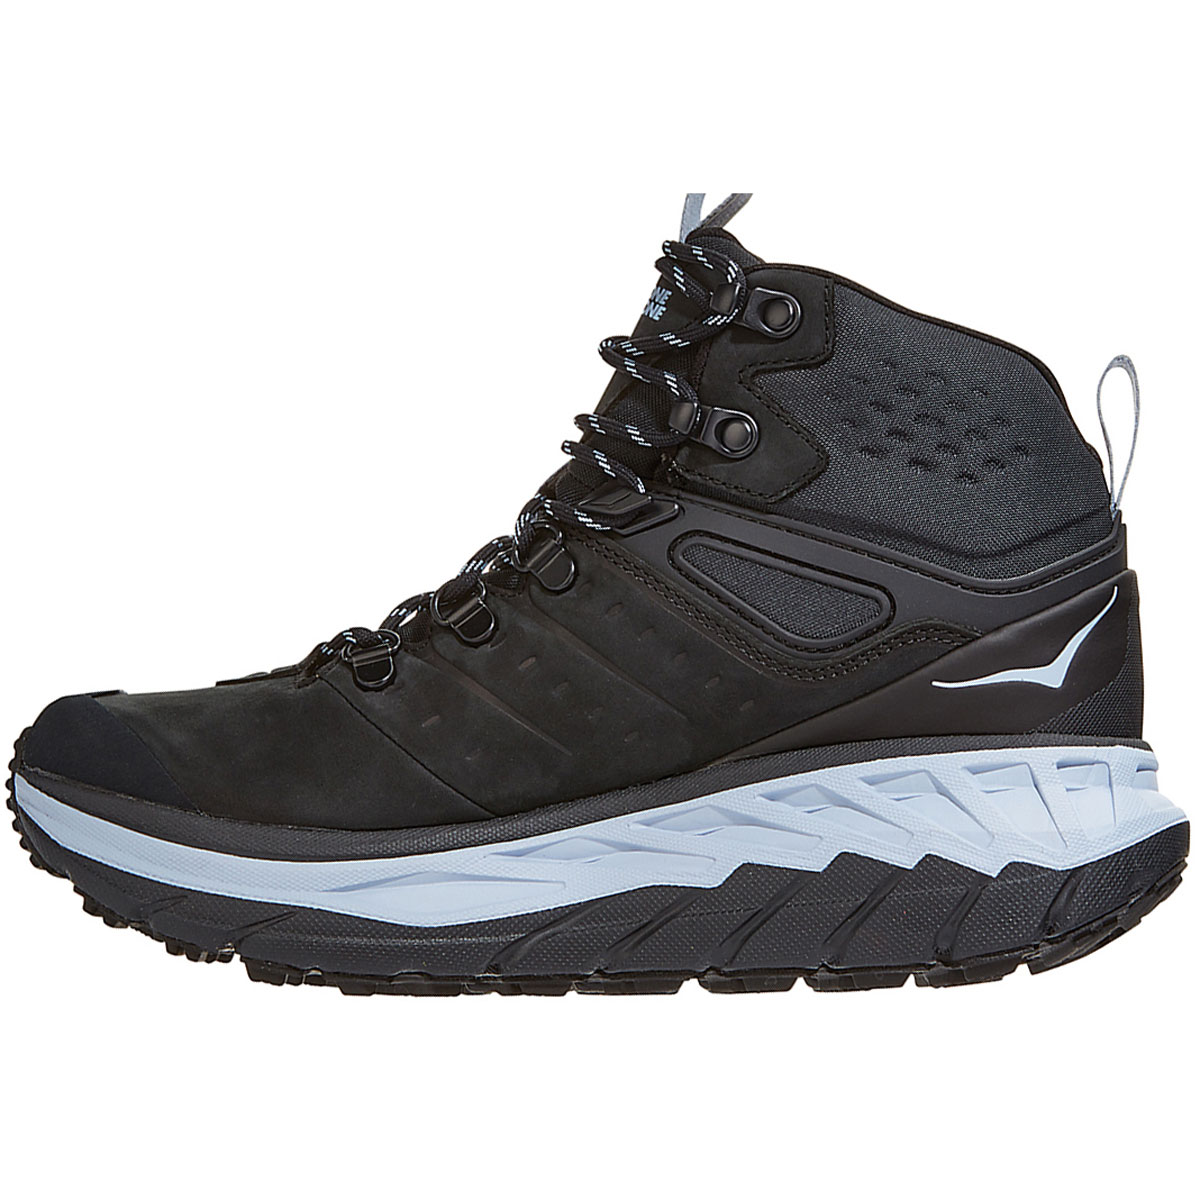 Women's Hoka One One Stinson Mid Gore-Tex Trail Running Shoe - Color: Anthracite/Heather - Size: 5 - Width: Regular, Anthracite/Heather, large, image 4